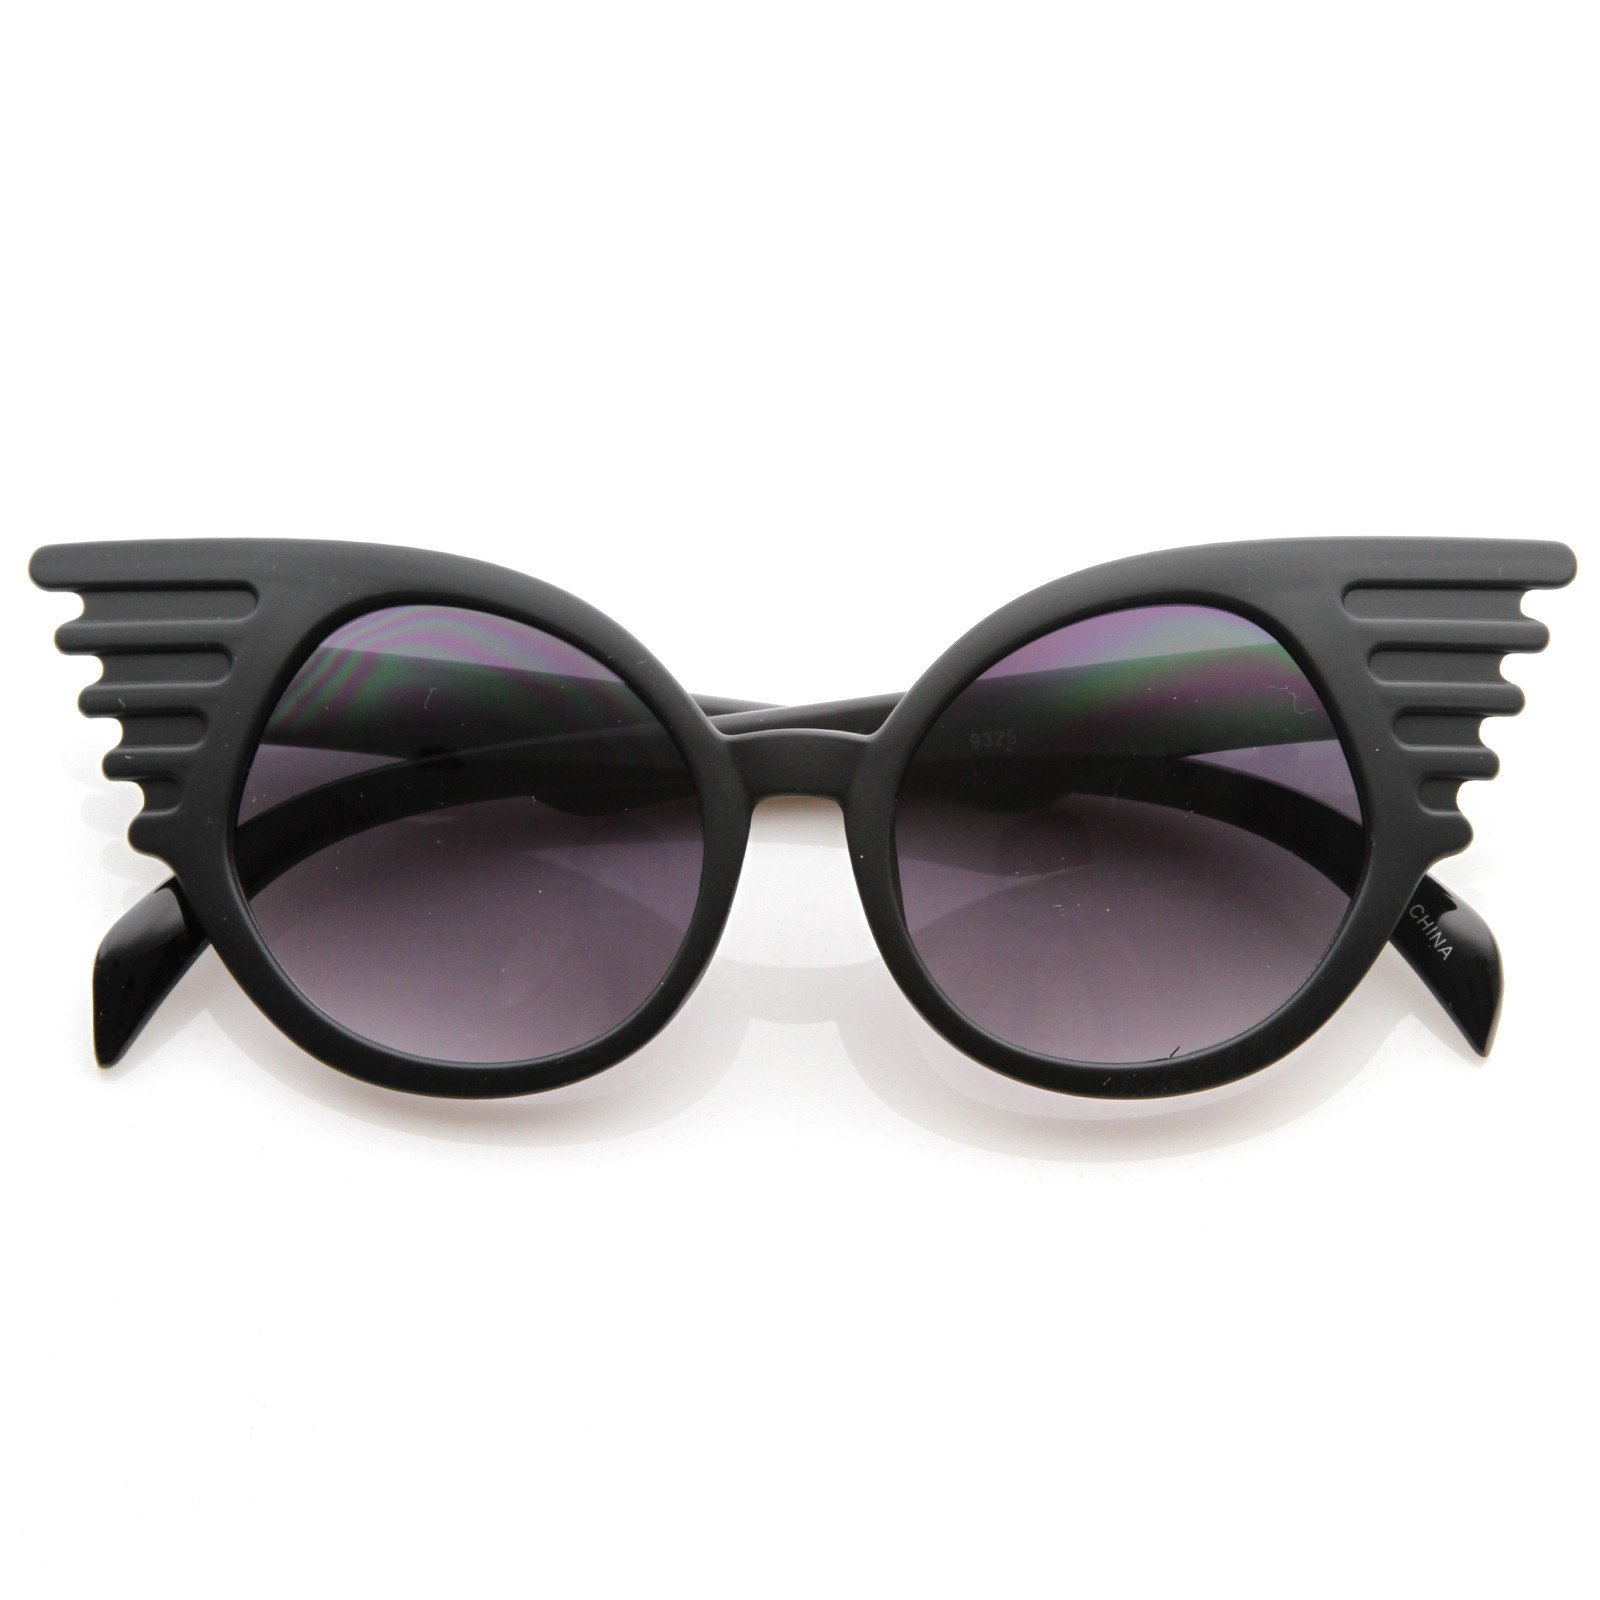 Image of Trendy Unique Fashion Angel Wings Round Sunglasses 8581